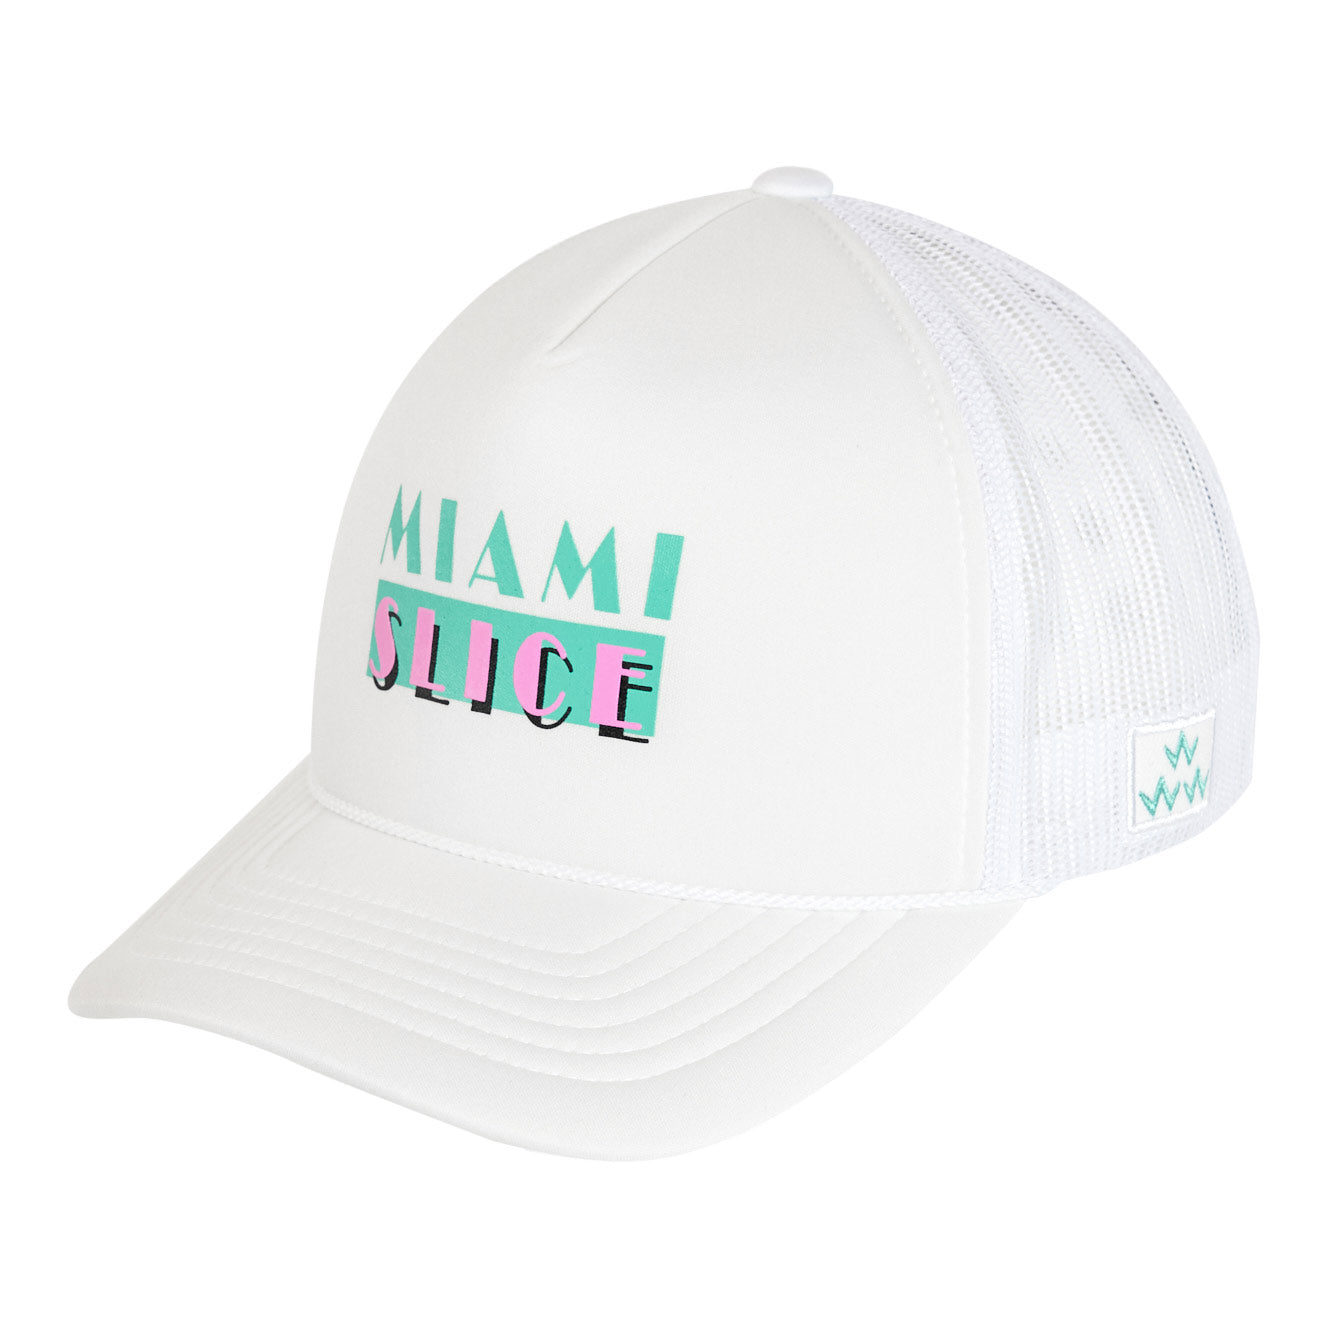 birds-of-condor-white-golf-miami-slice-trucker-hat-cap-front